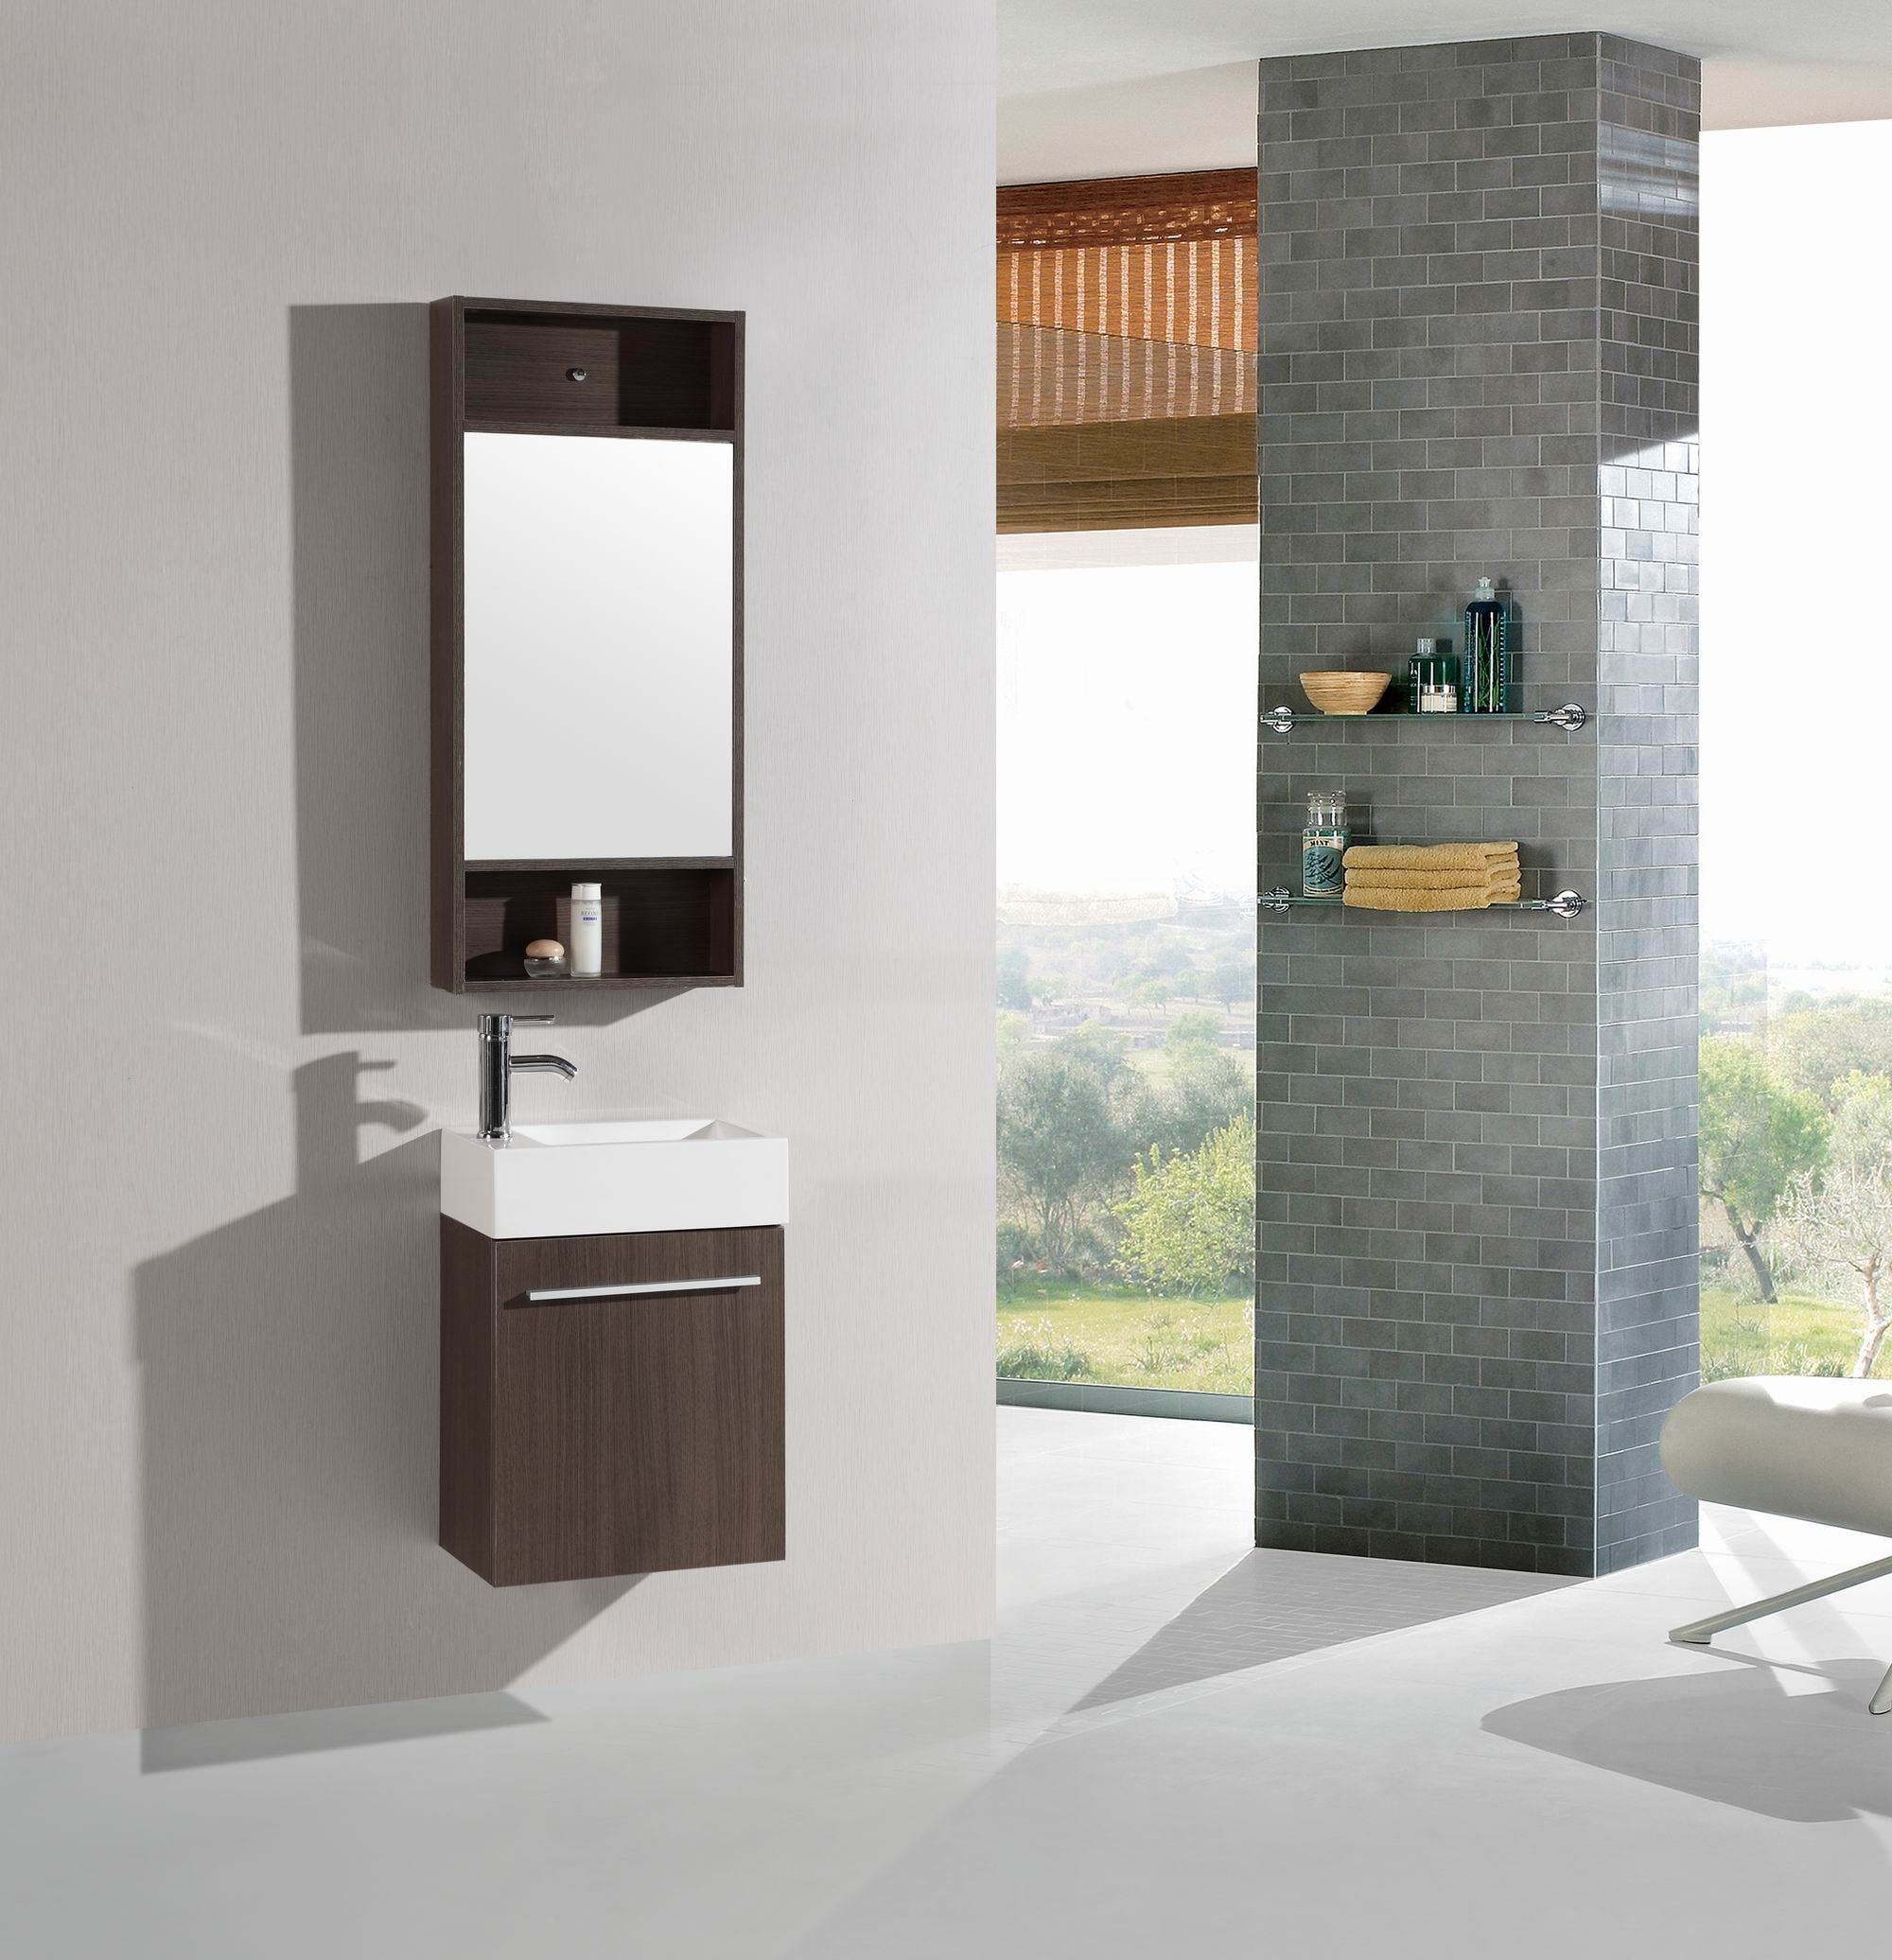 Size Single Vanities Up to 20 Inches Bathroom Vanities